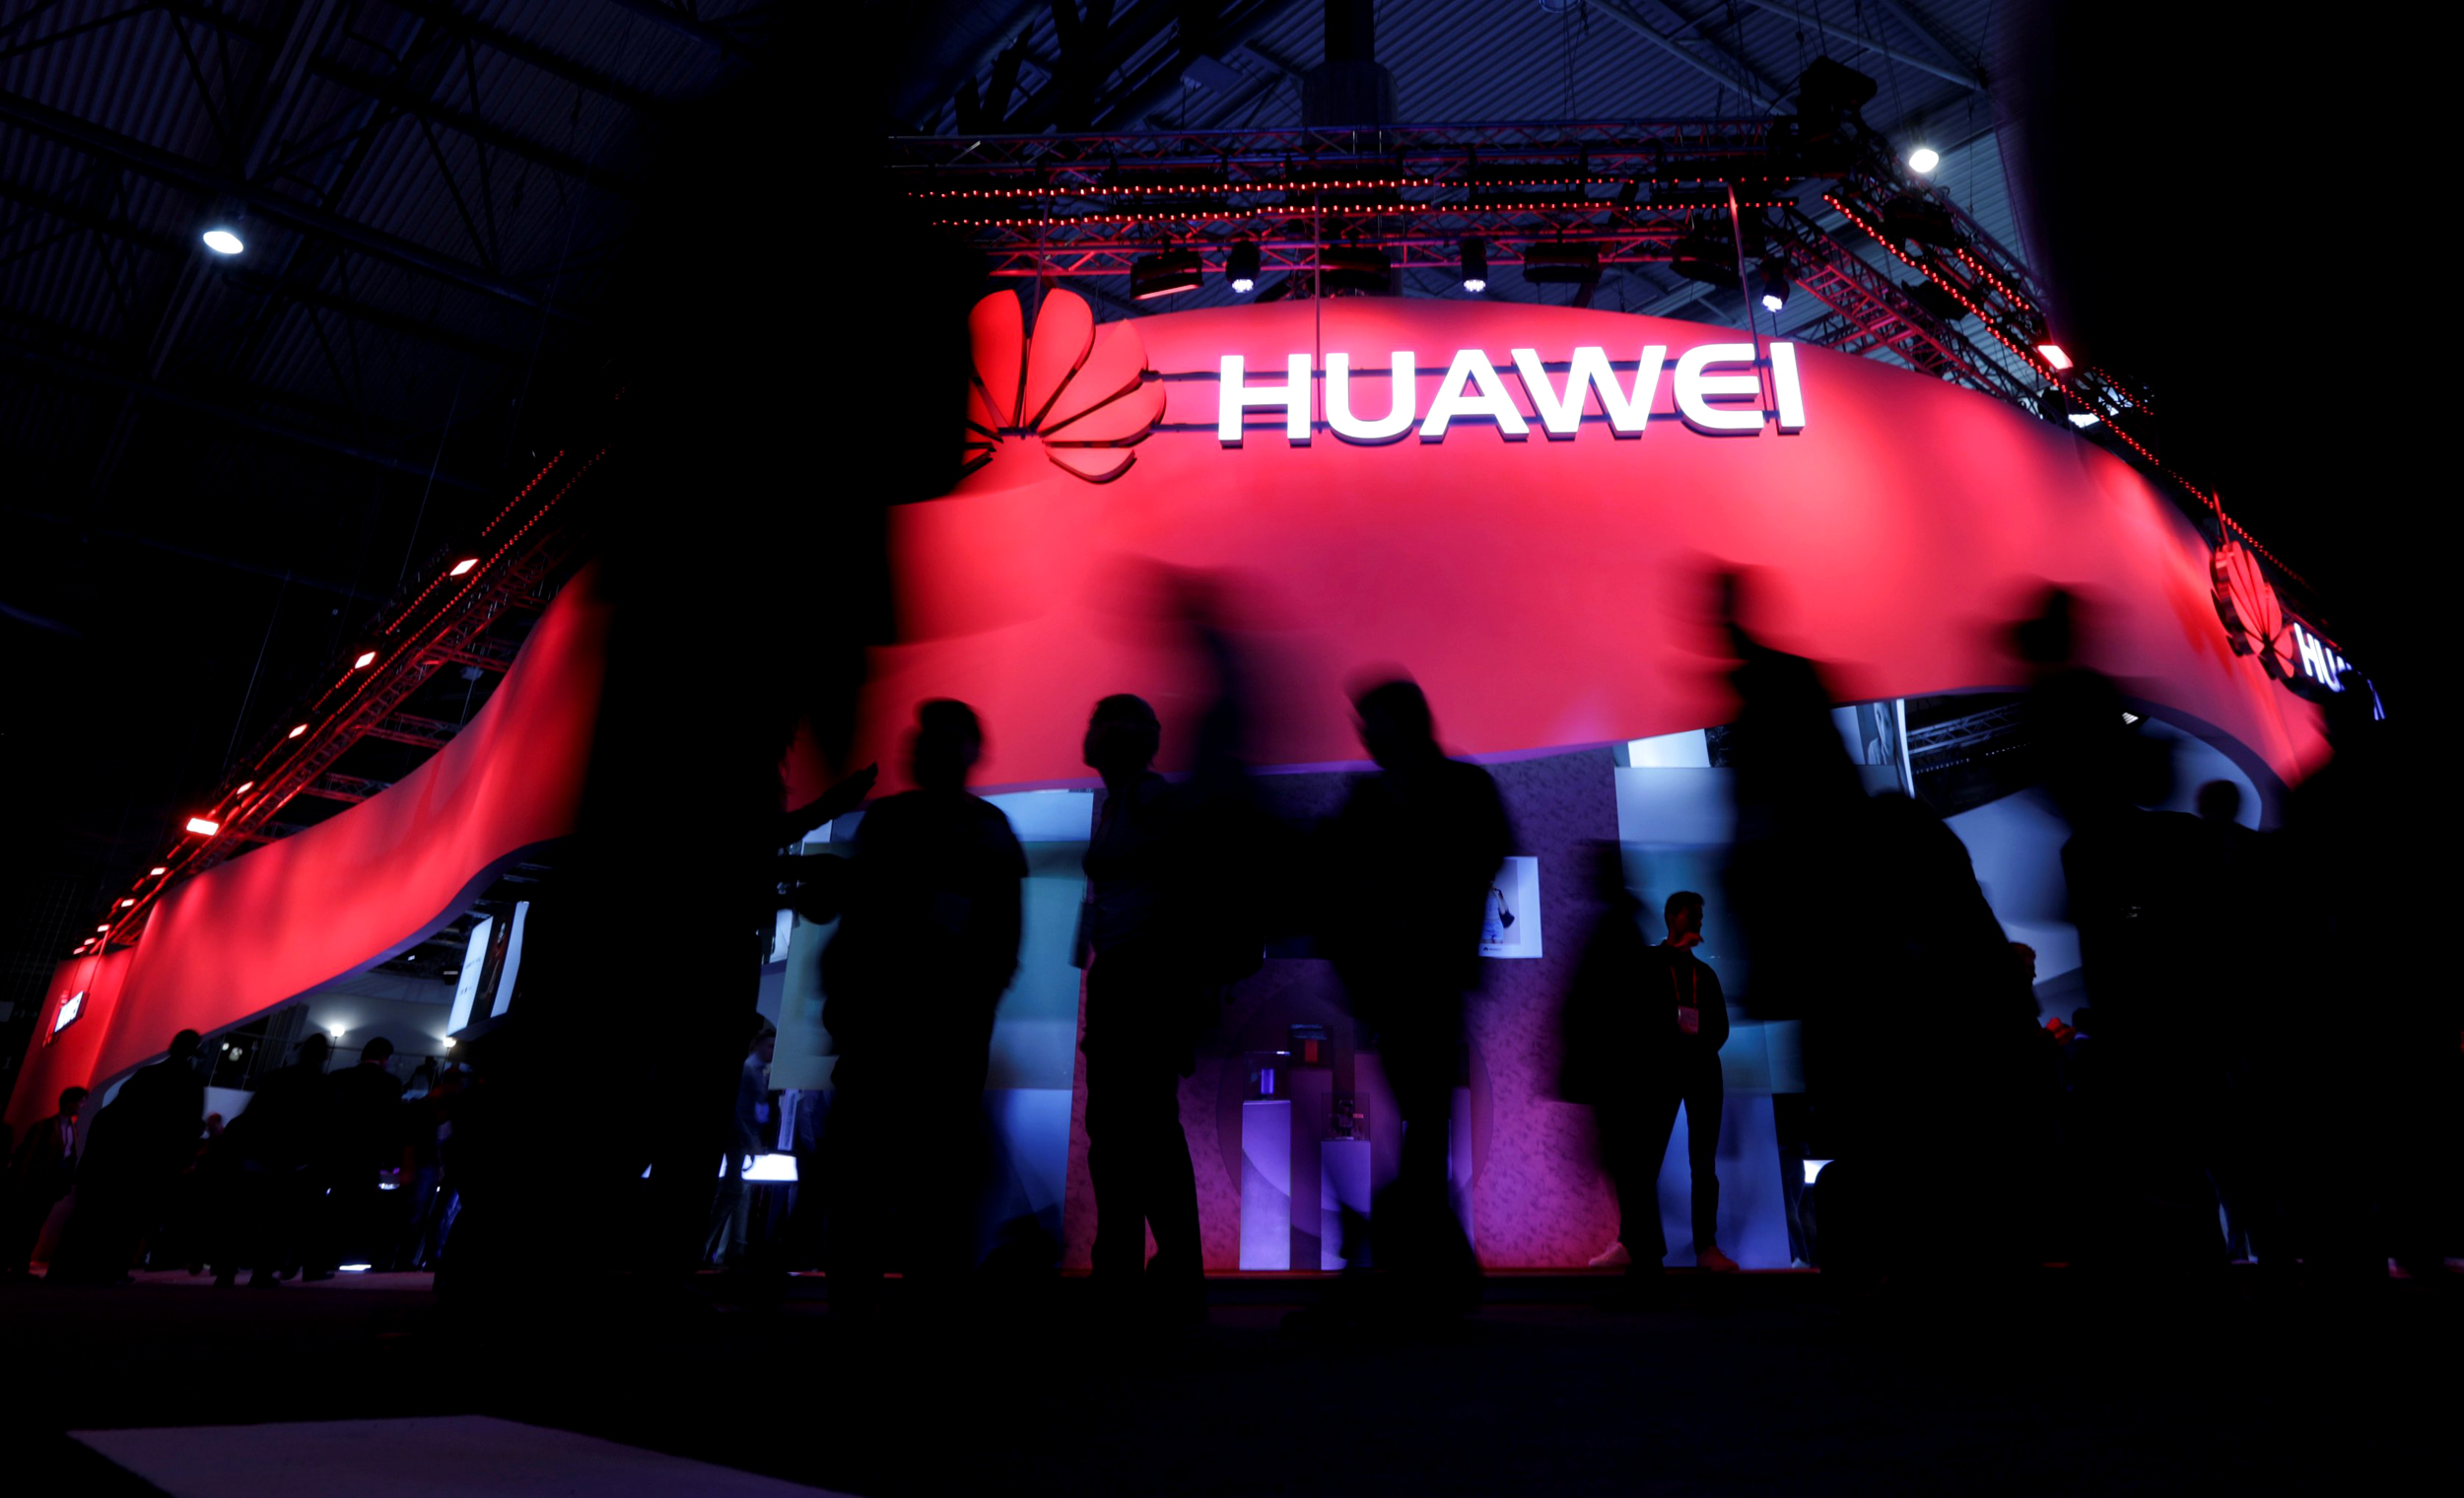 Here's-how-Trump's-latest-executive-order-could-affect-Huawei